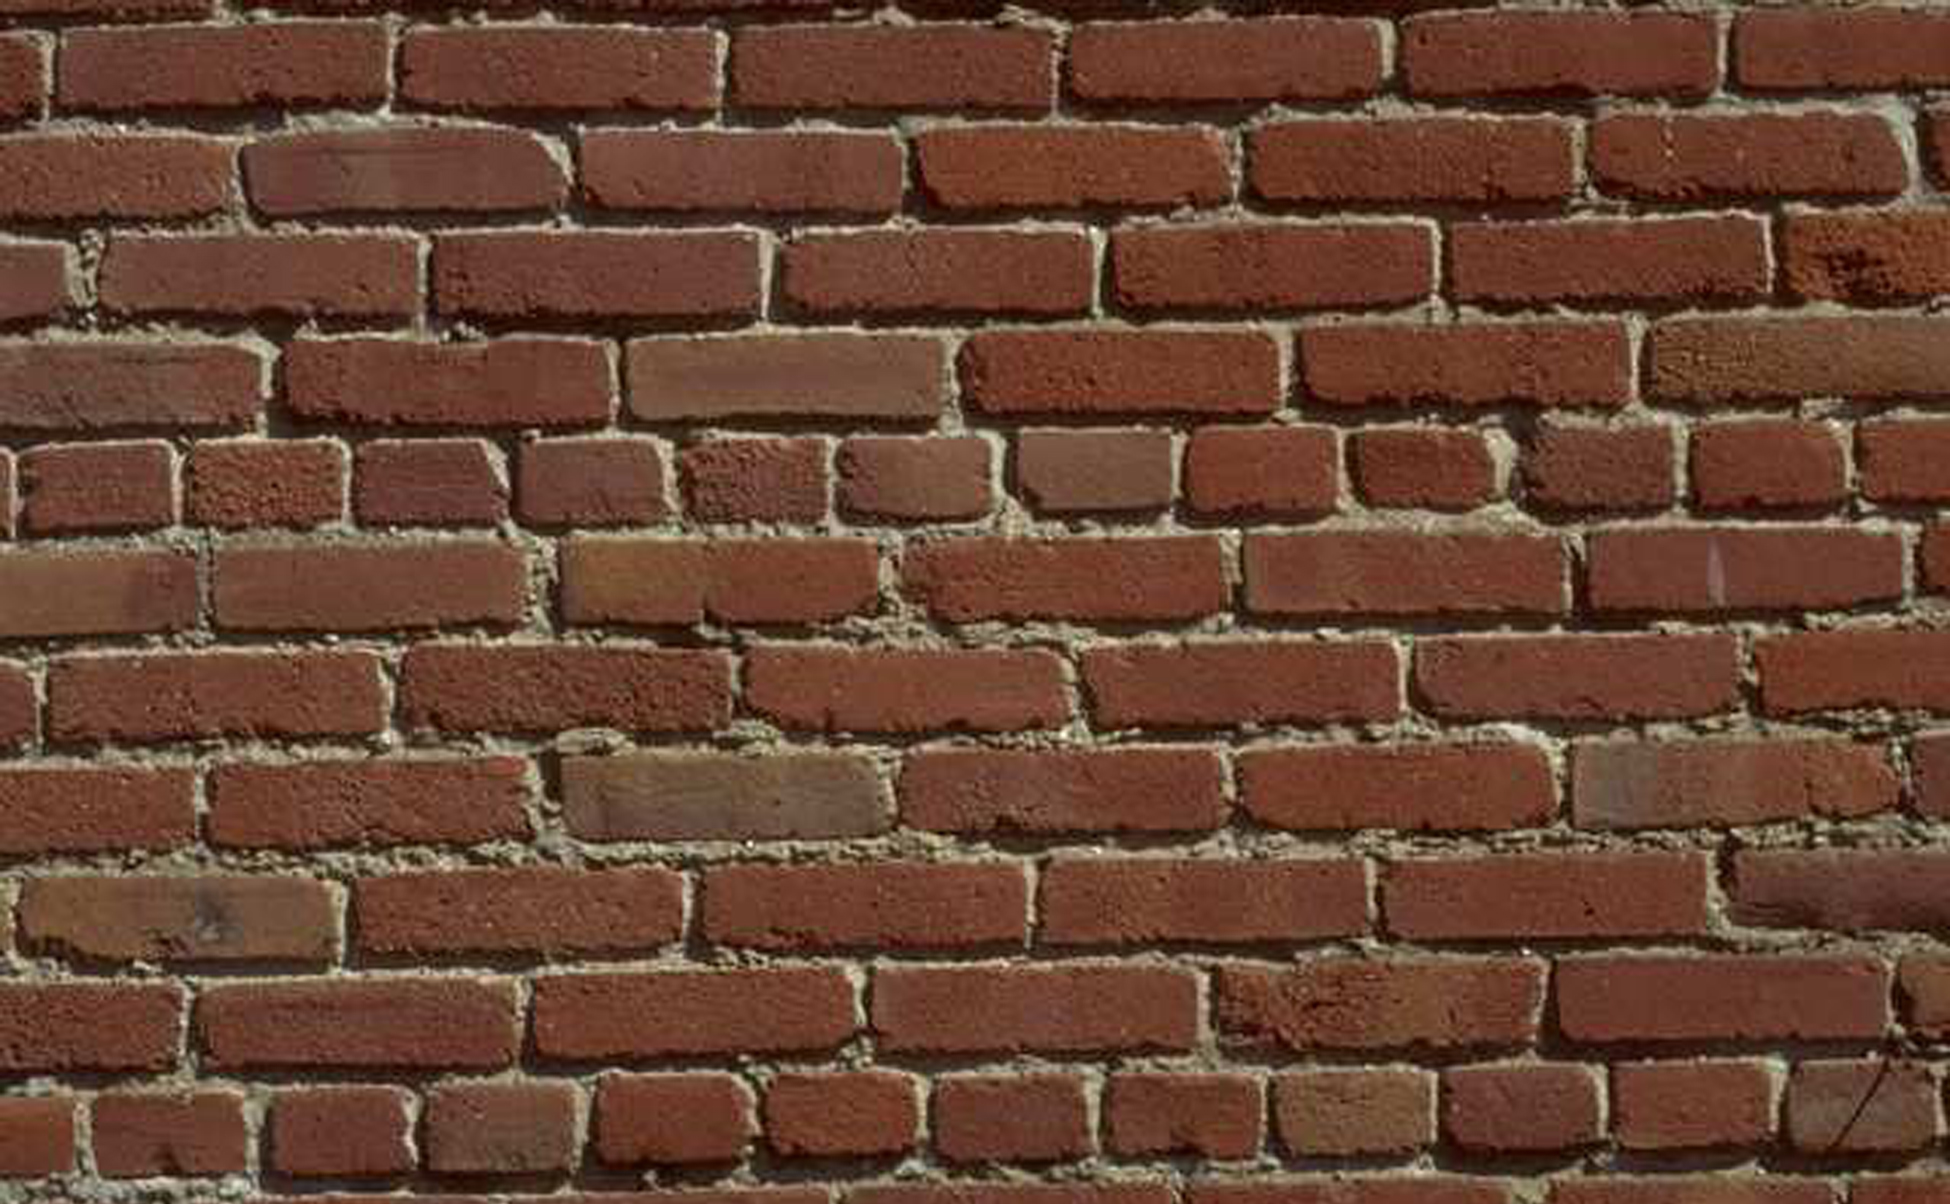 High Resolution Brick Texture Png Clipart #23892.